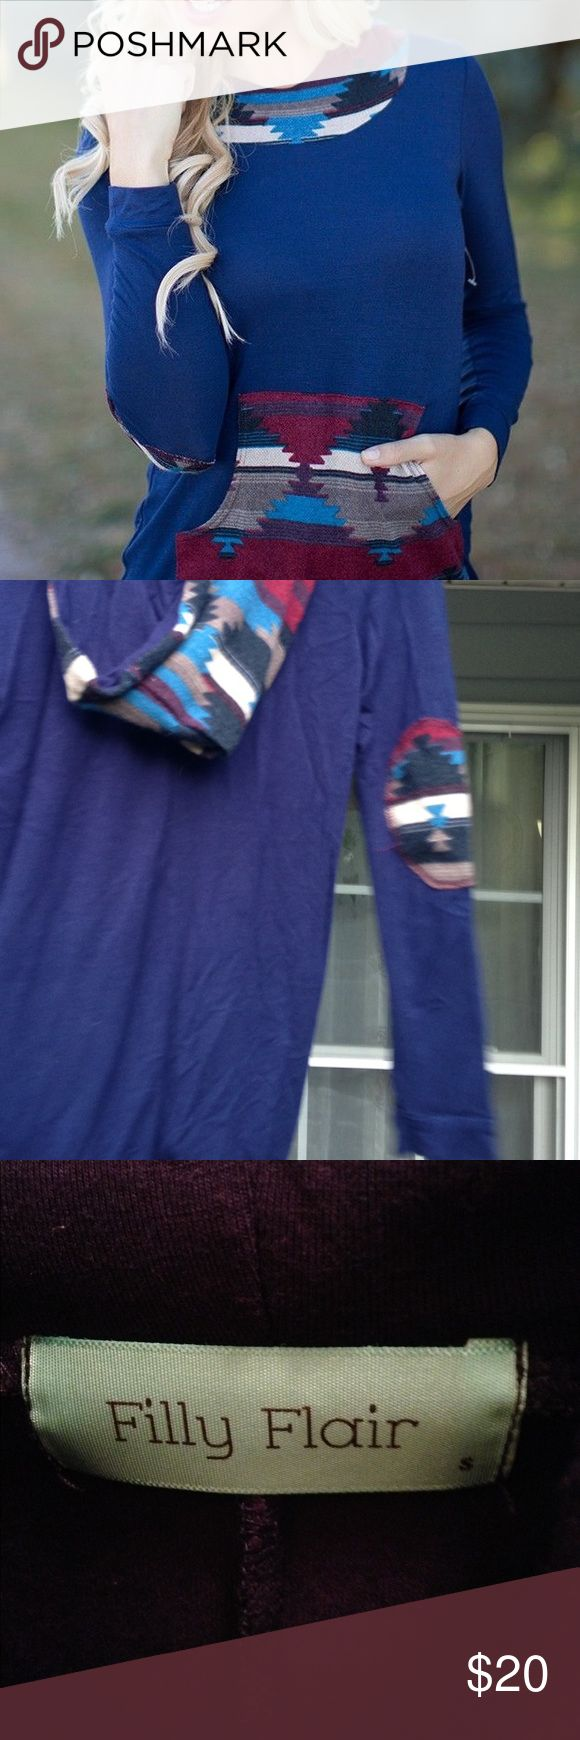 Filly Flair Aztec hoodie shirt Dark blue with Aztec print on the hood, pouch and elbows. Very thin and soft! Filly Flair Tops Tees - Long Sleeve